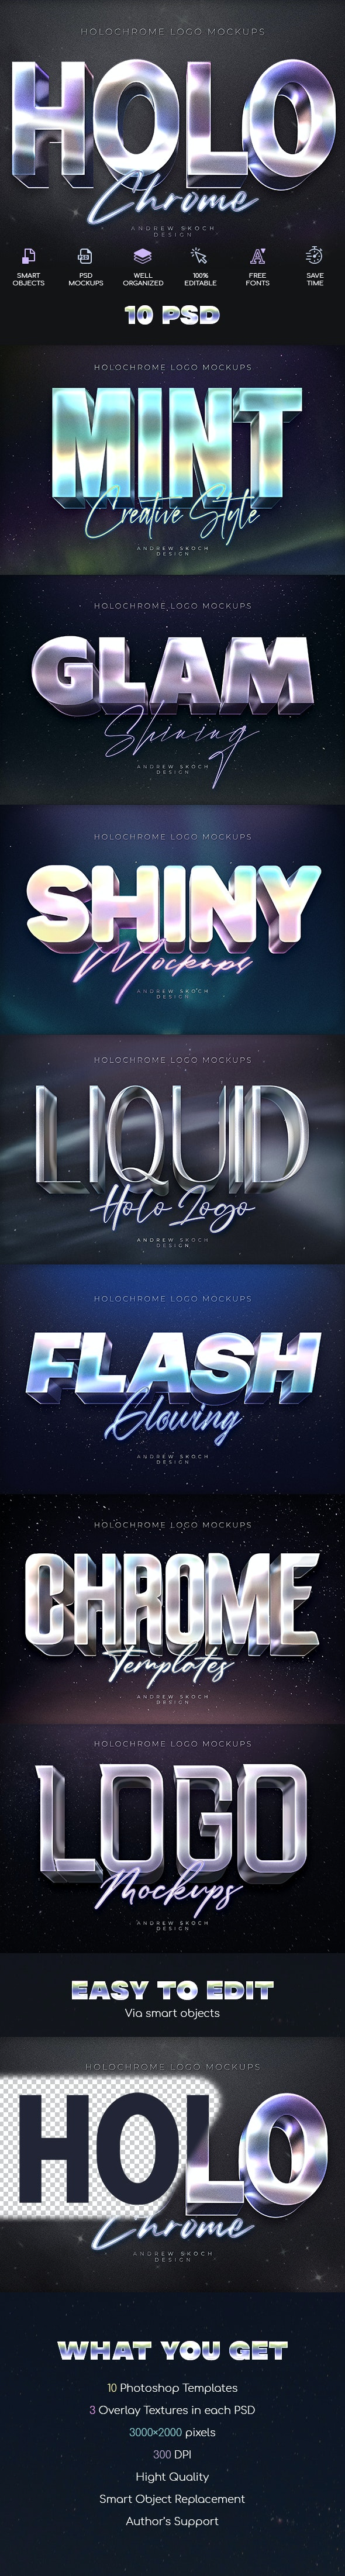 Holochrome Text Effects - Text Effects Actions